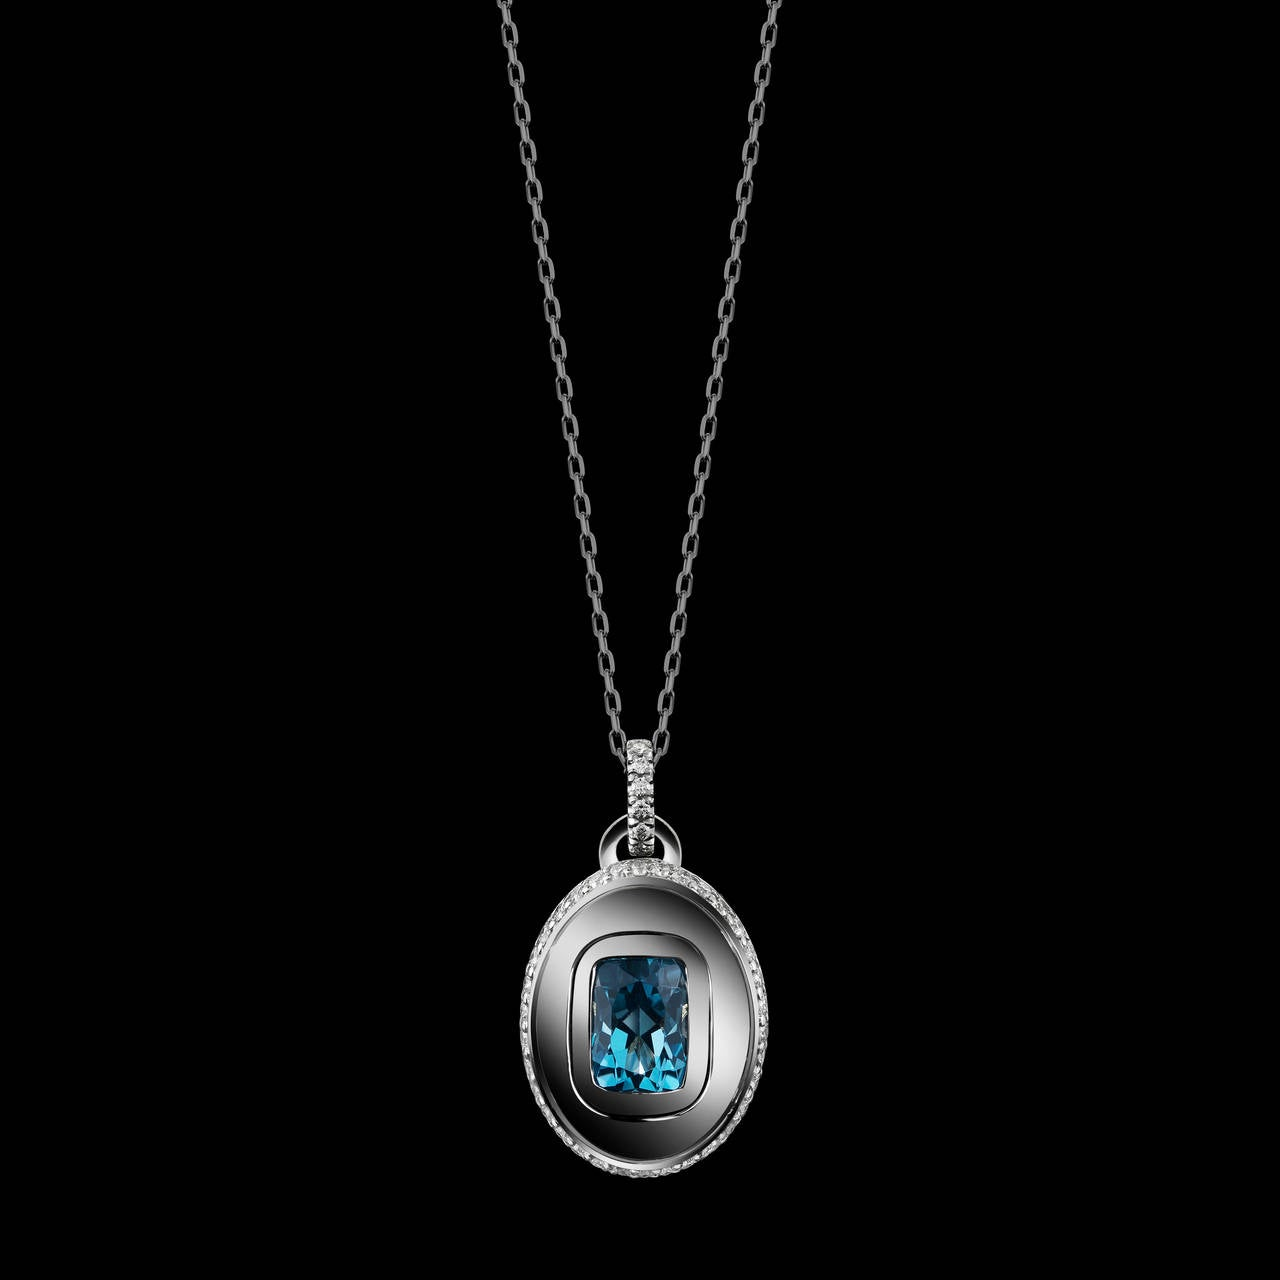 *Please contact us for more information on this piece or on creating your own Alexandra Mor custom Design.  Alexandra Mor December birthstone charm necklace features a Cushion-cut  blue Topaz weighing 1.40 carats. Pendant features 52 round Diamonds